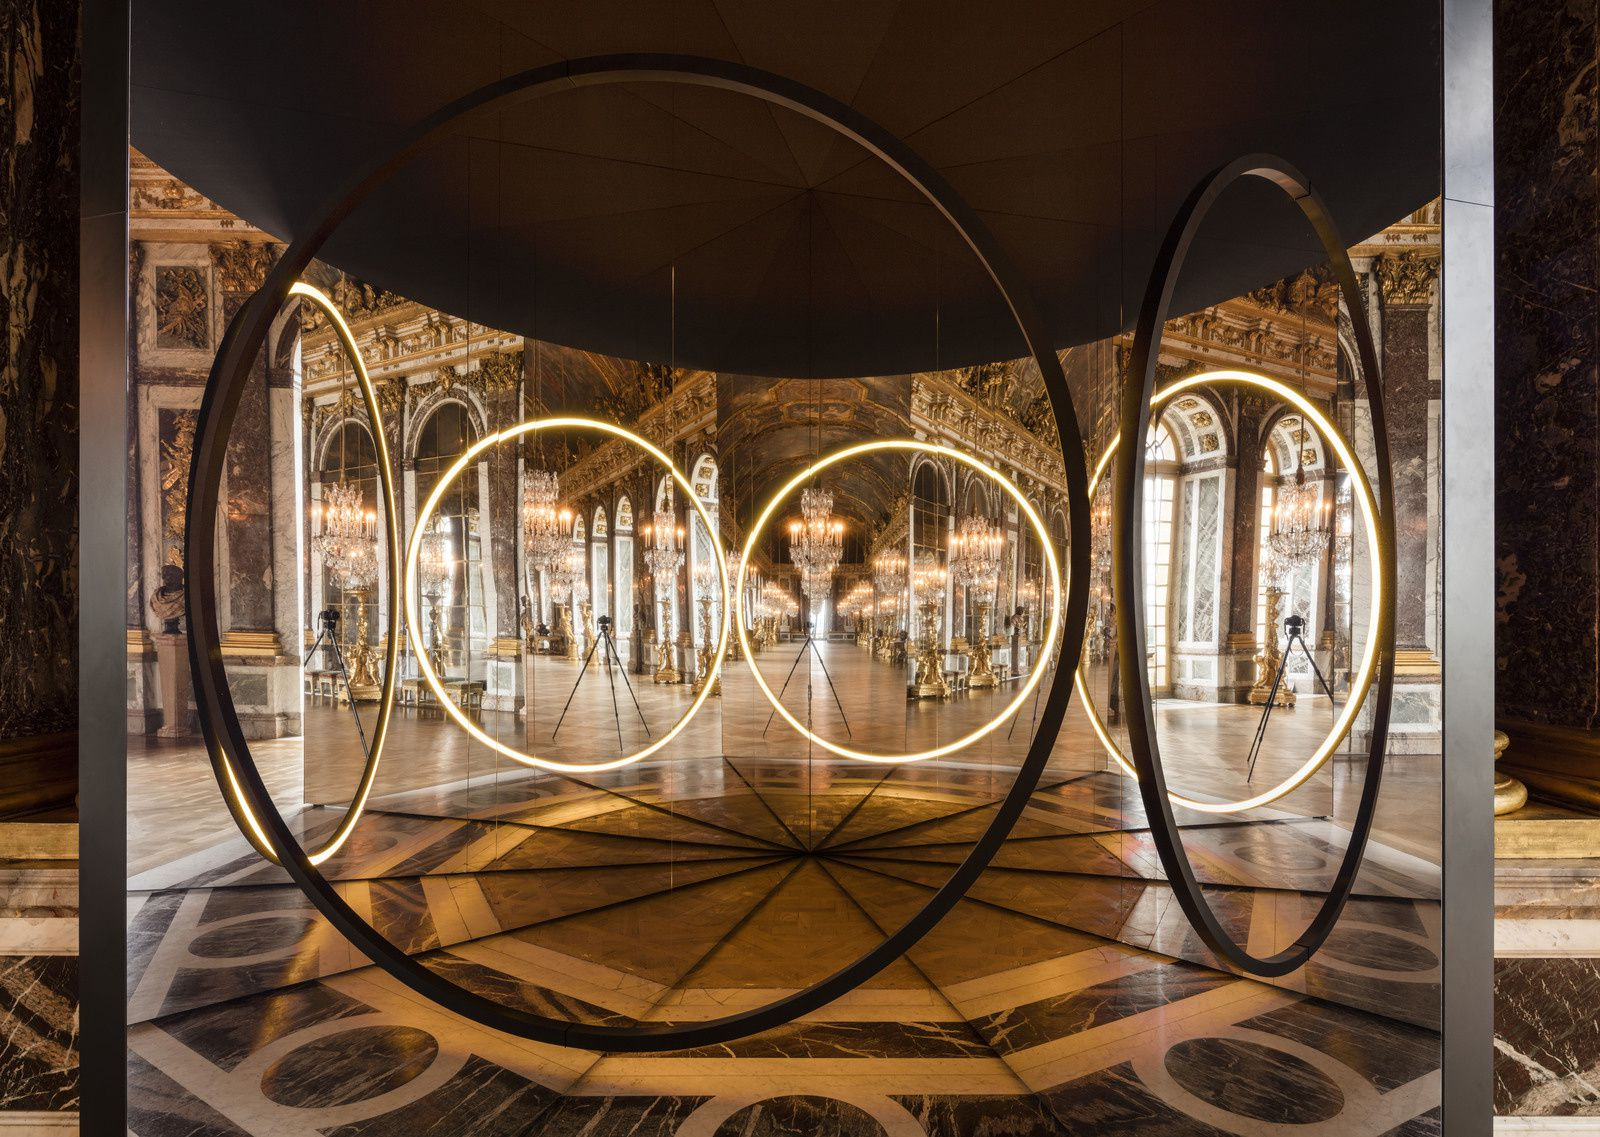 Your sense of unity, 2016 Installation view, Palace of Versailles, 2016 Photo: Anders Sune Berg Courtesy of the artist; neugerriemschneider, Berlin; Tanya Bonakdar Gallery, New York © 2016 Olafur Eliasson